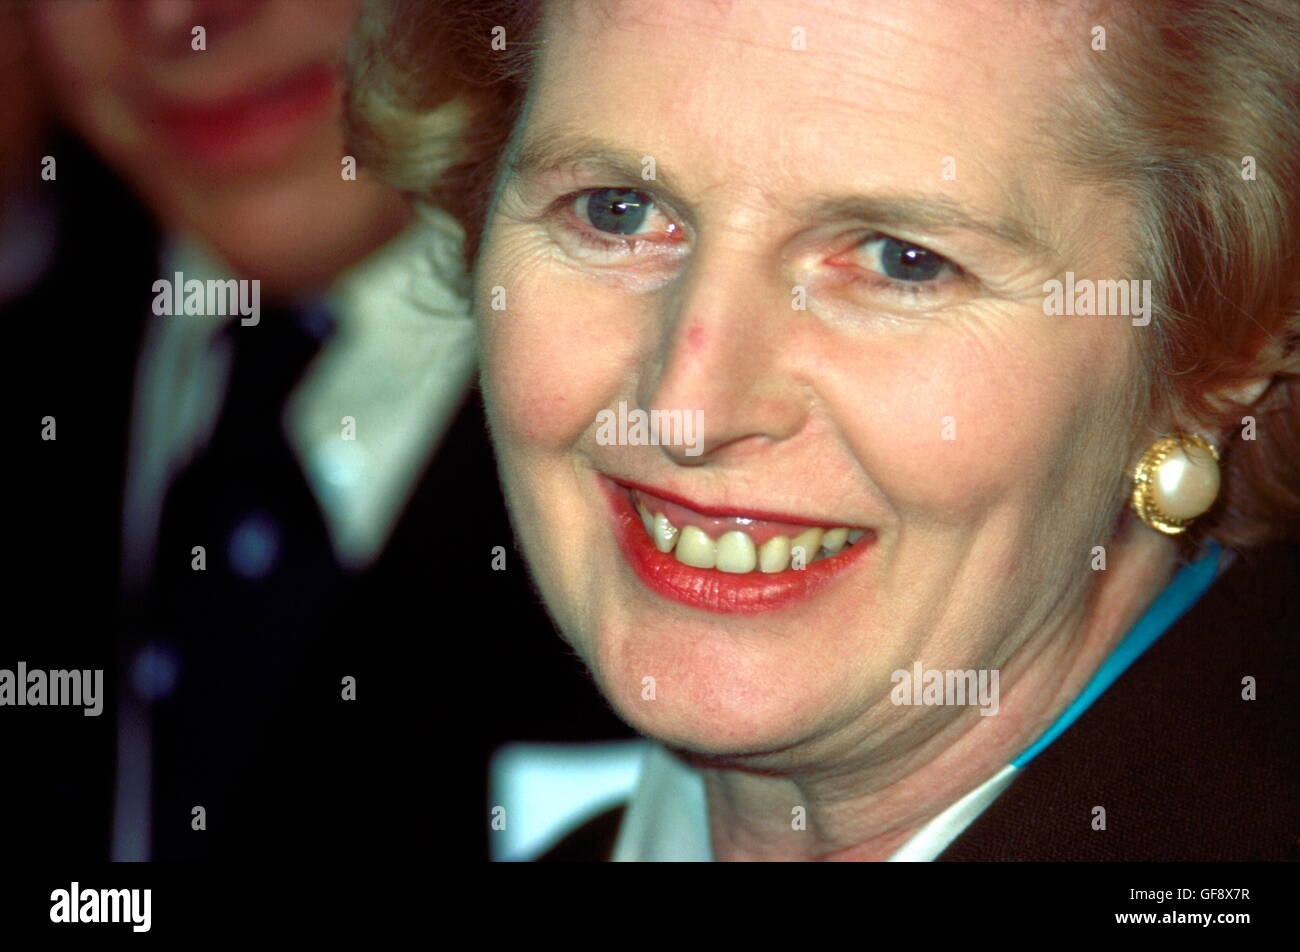 AJAXNETPHOTO. 11TH FEB, 1977. PORTSMOUTH, ENGLAND. LEADER OF THE OPPOSITION MP MARGARET THATCHER ON A TOUR OF HMS - Stock Image